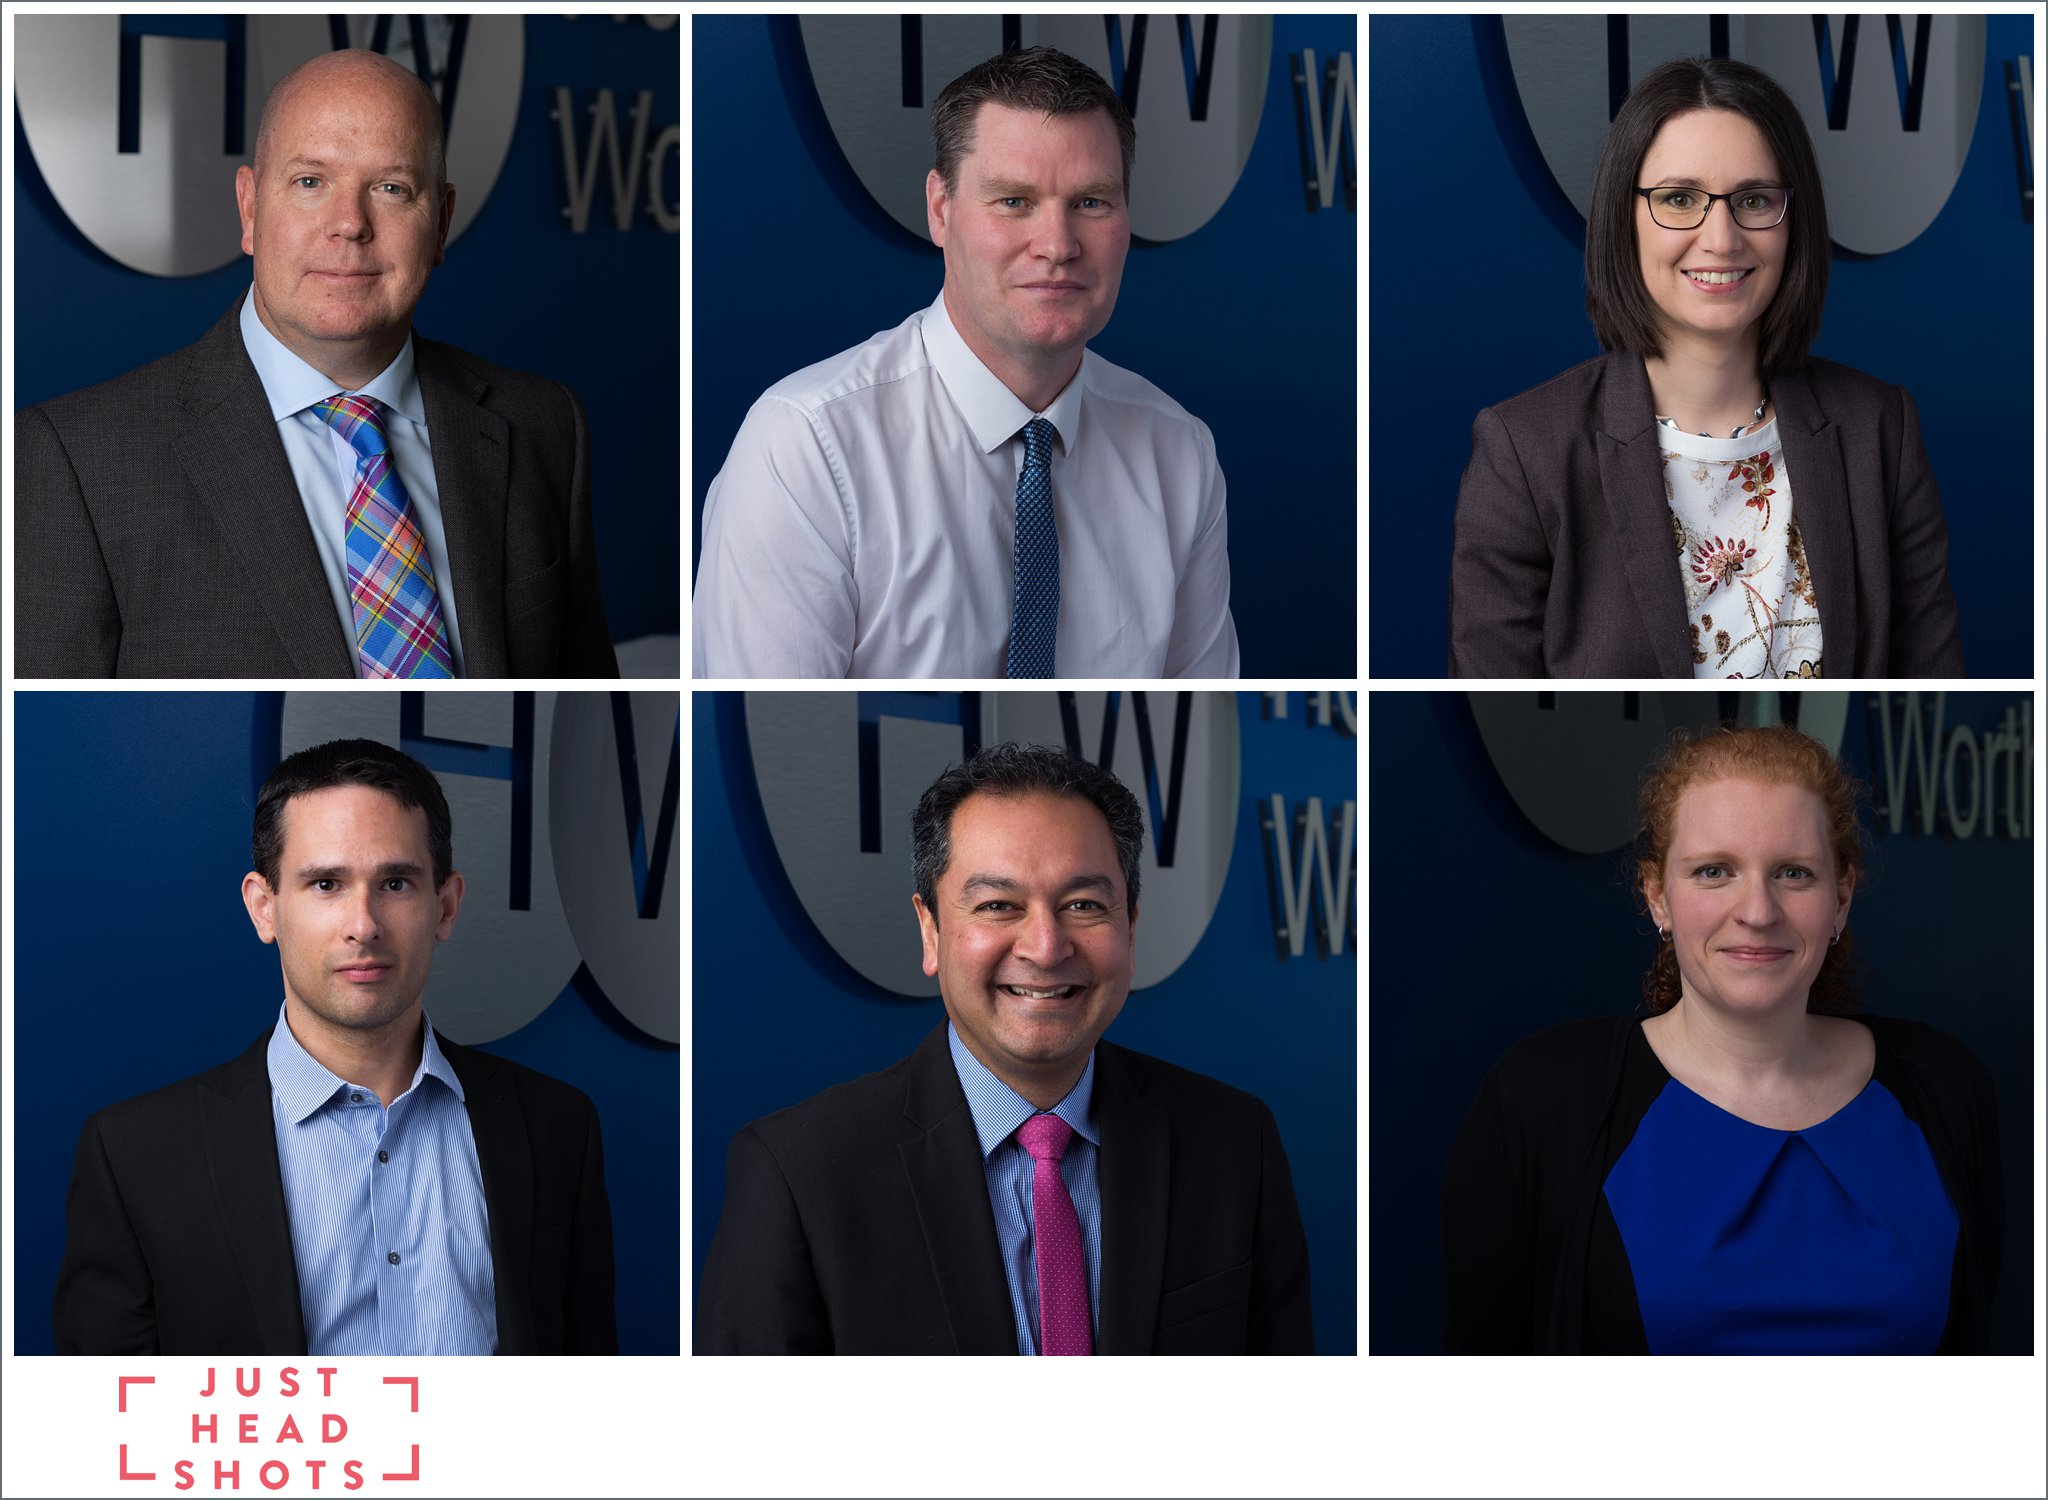 corporate headshot photos of accountants in Nantwich with company logo and dark blue background